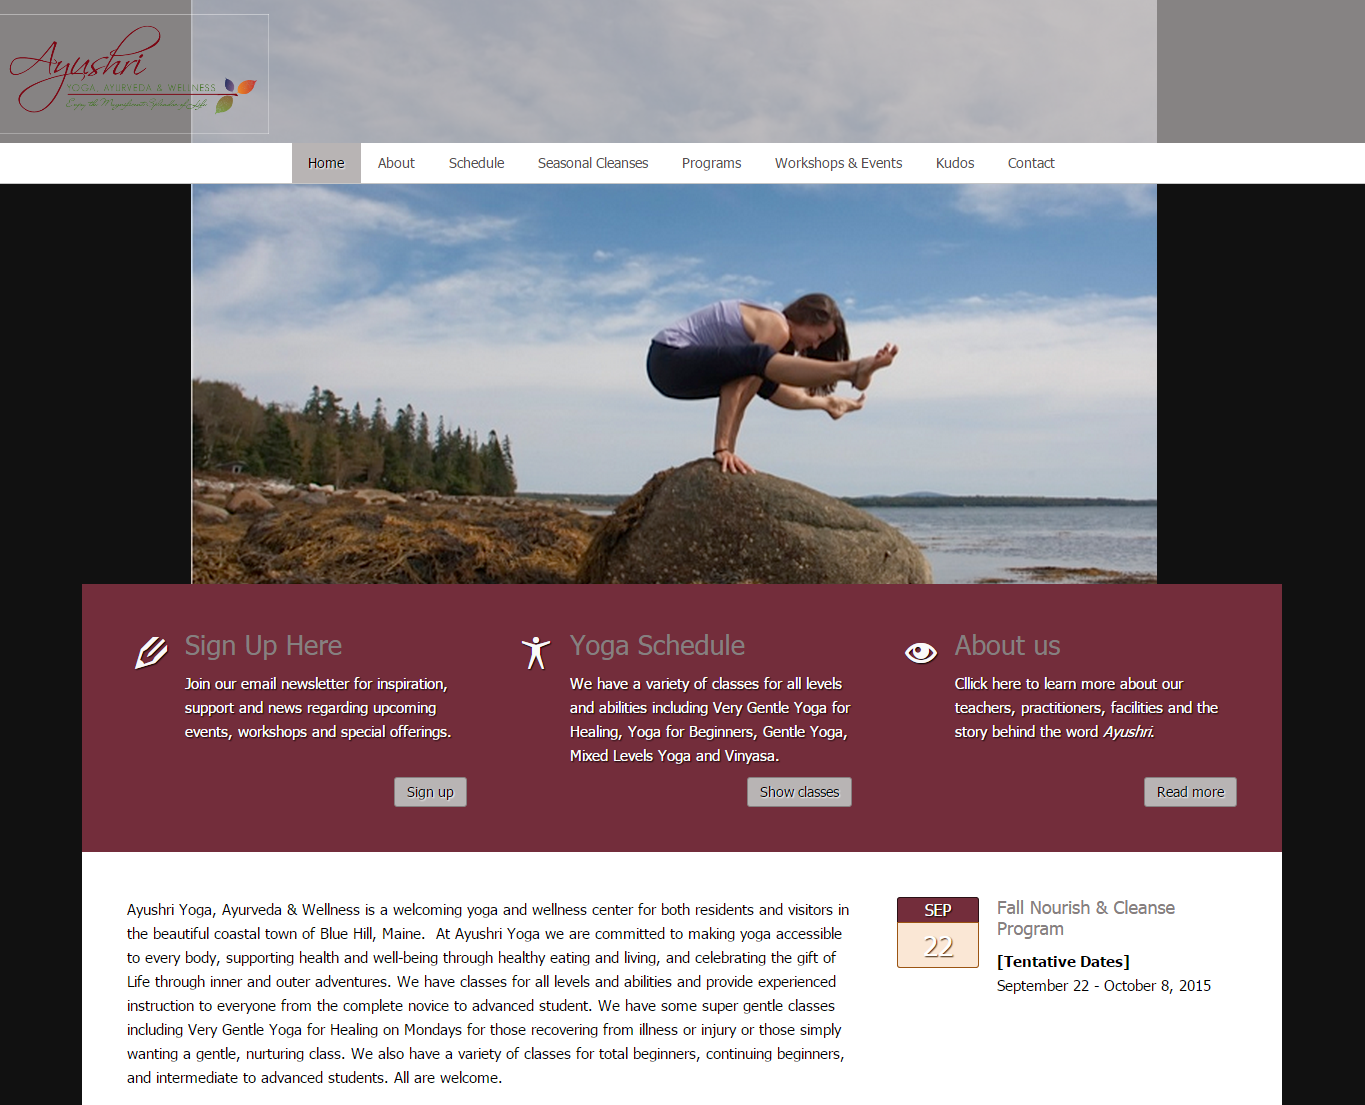 ayushri yoga website redesign